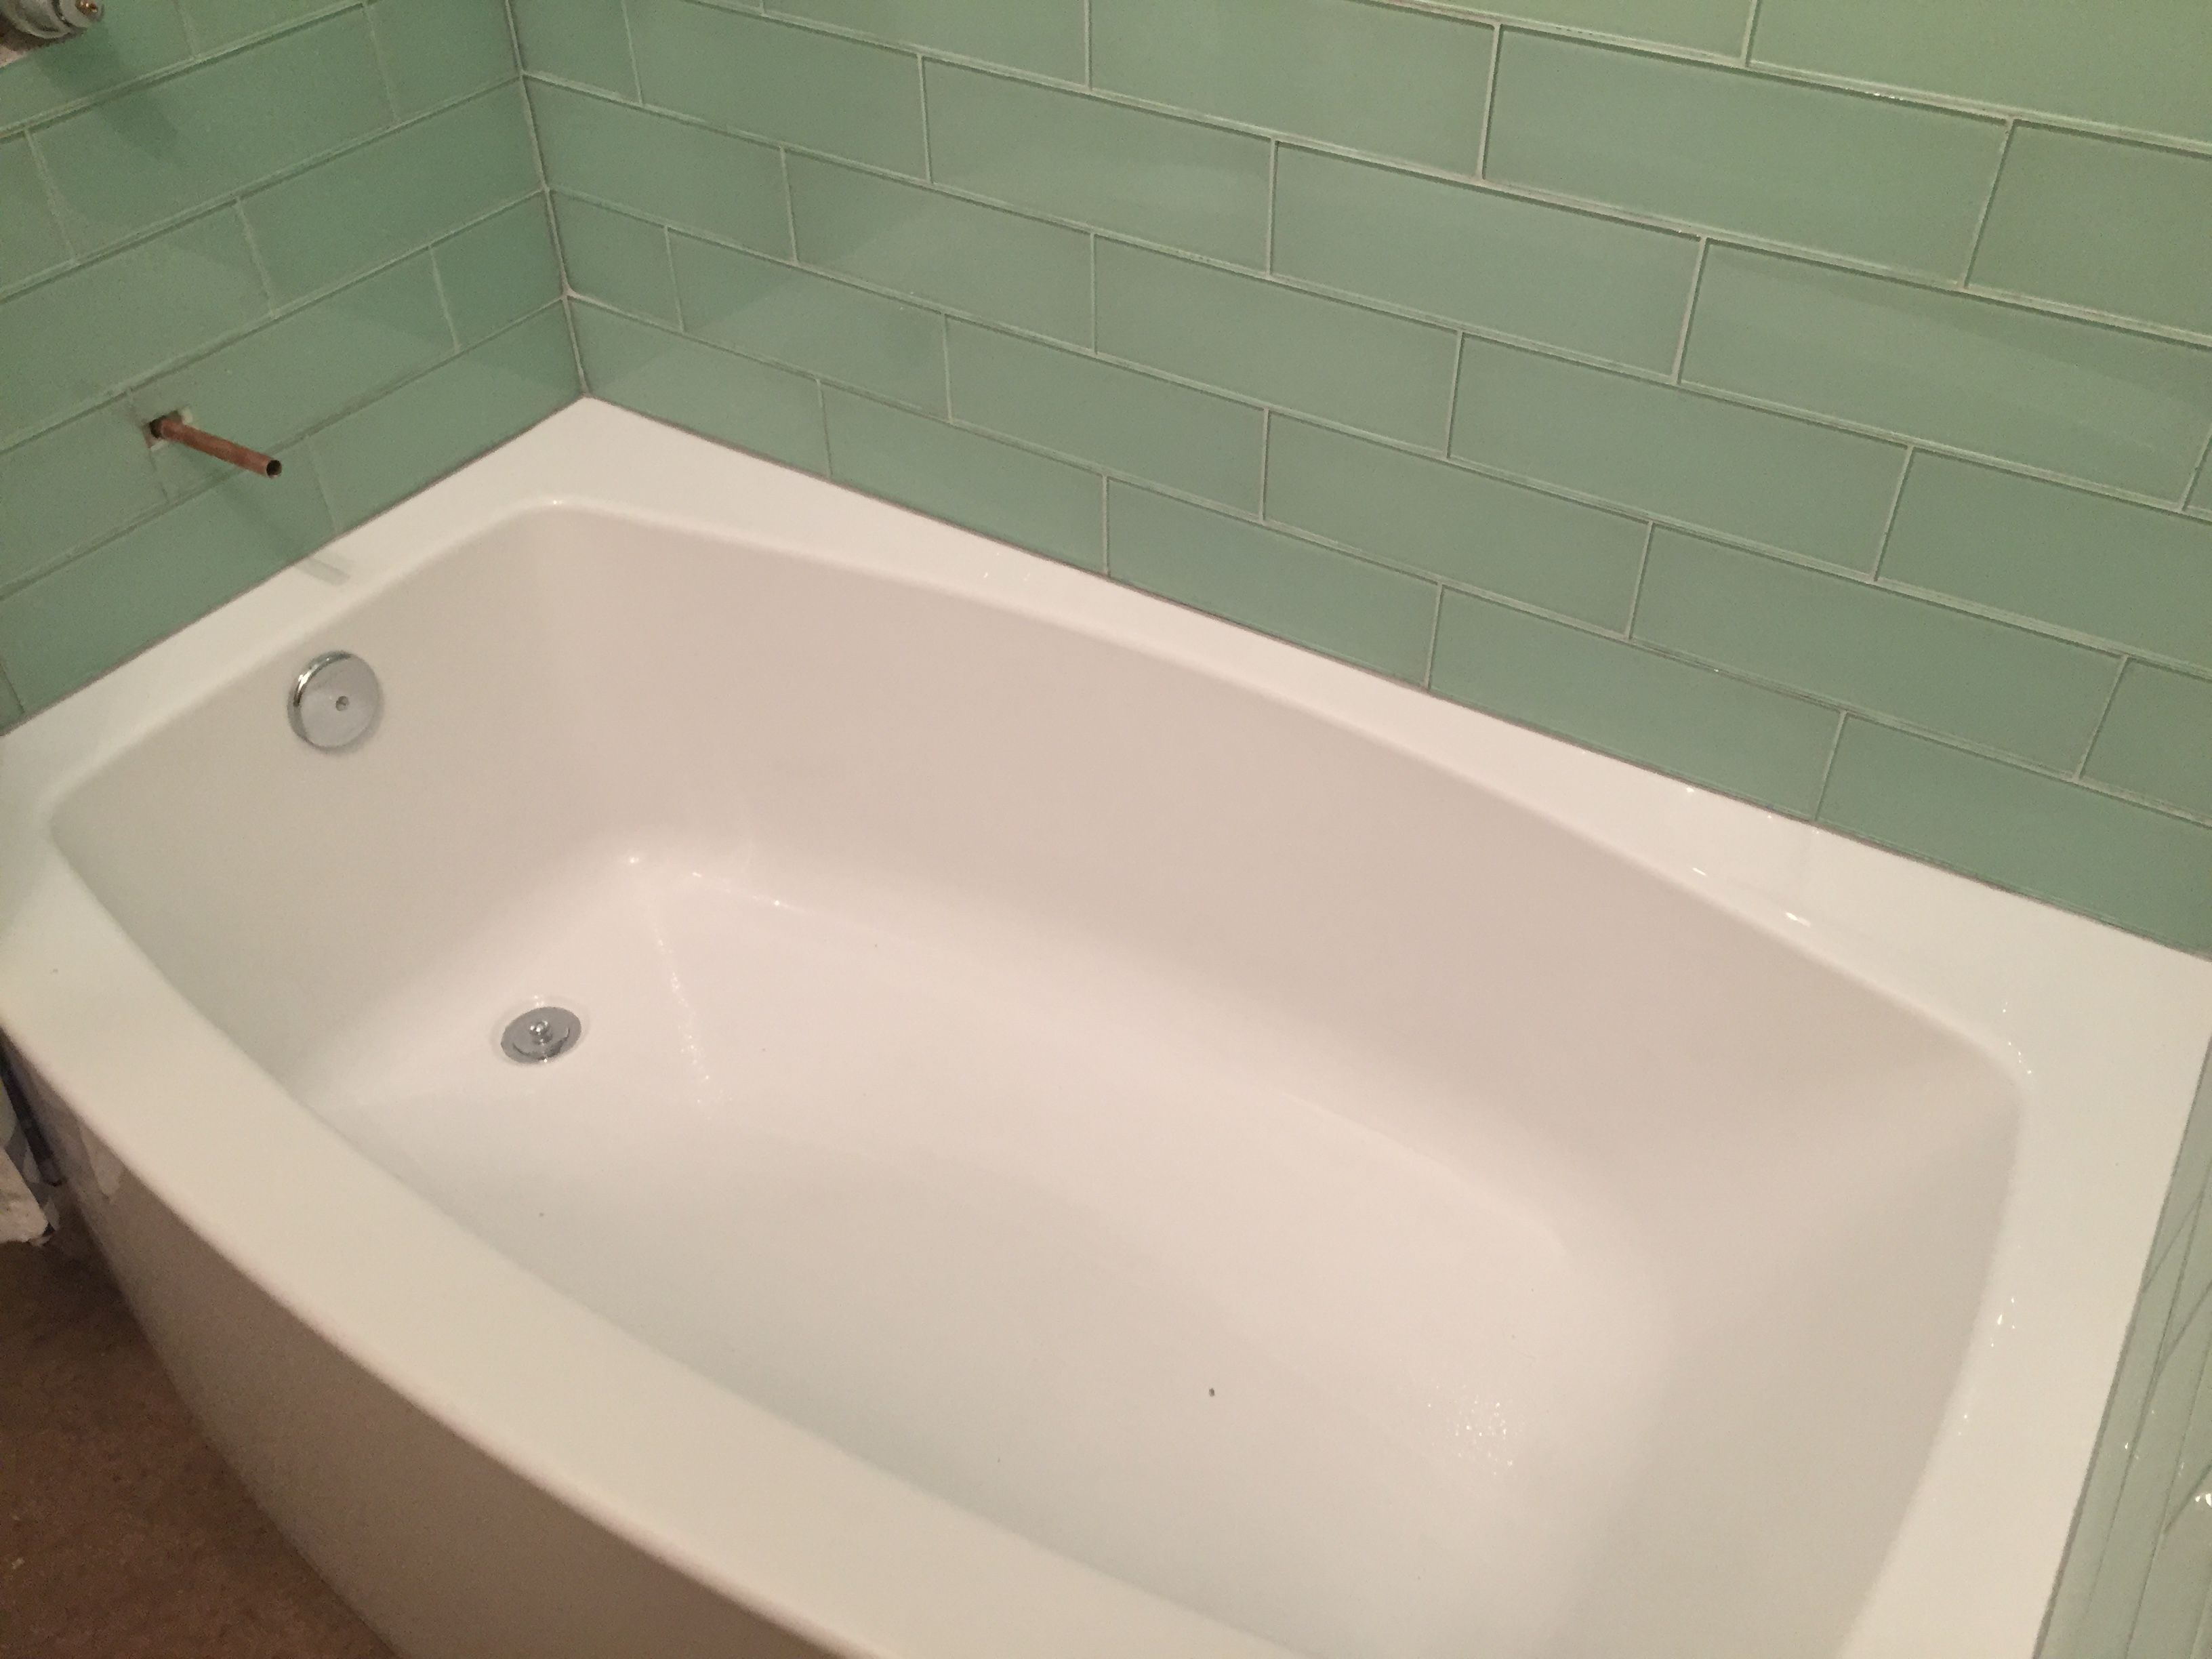 Sea glass subway tile (surf from modwalls) with pale grey grout ...